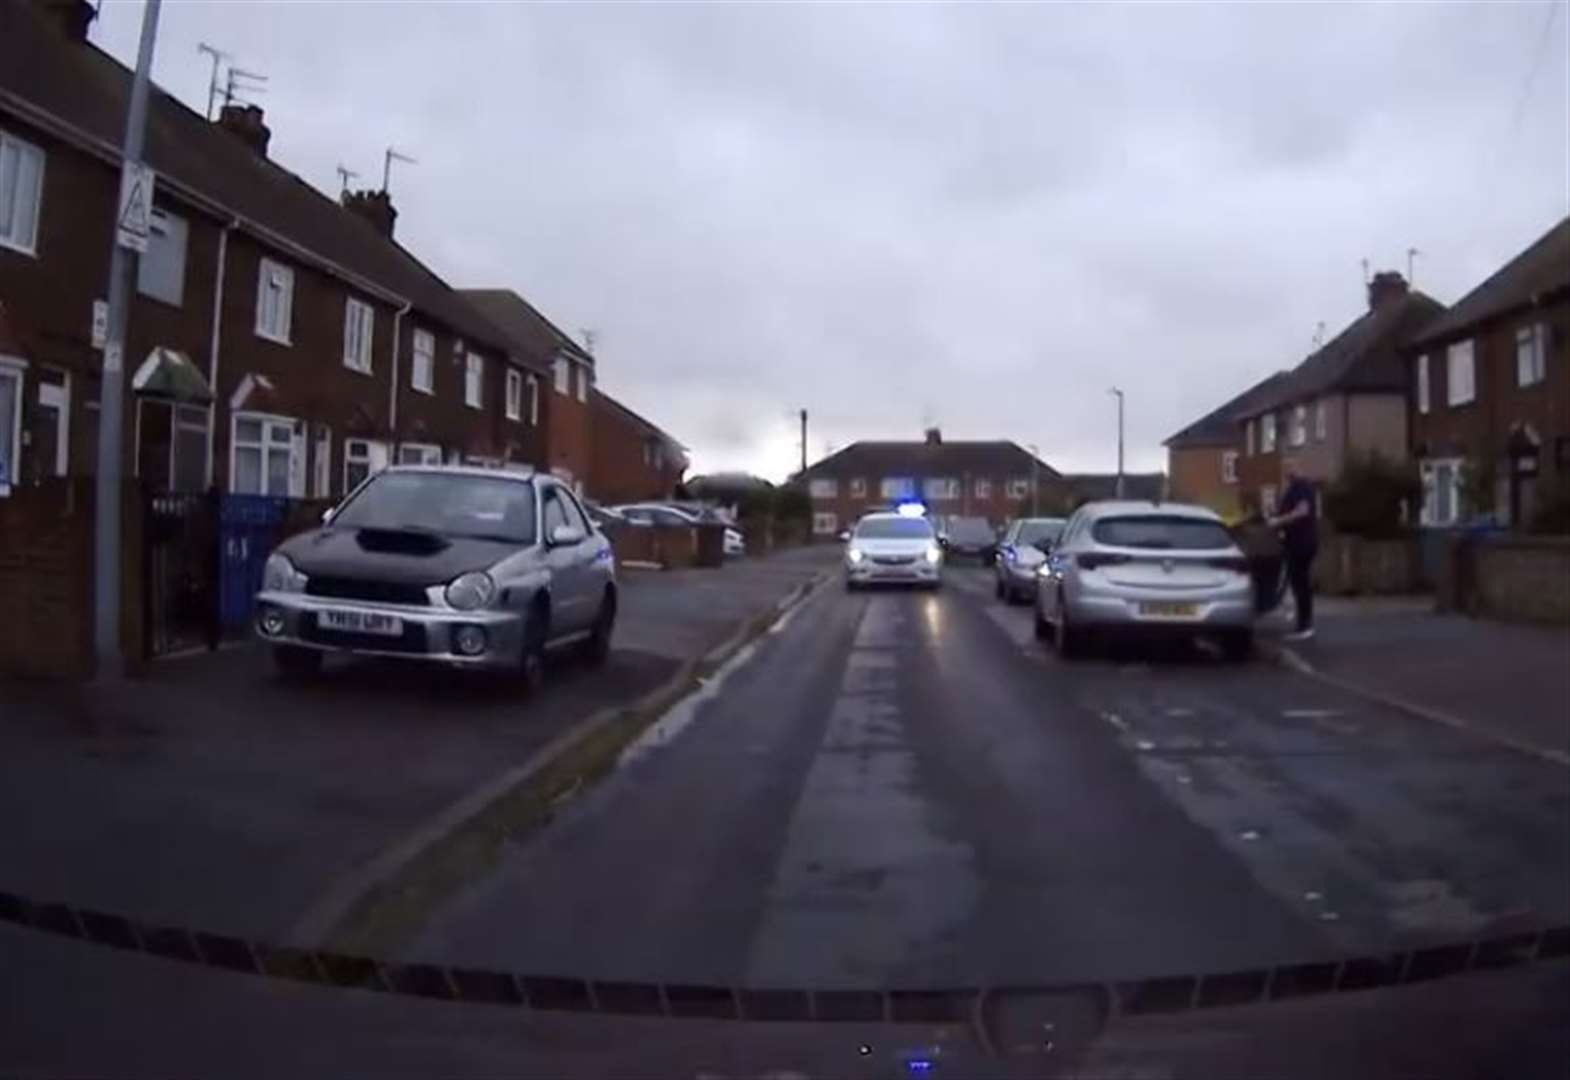 Teenager arrested after police chase